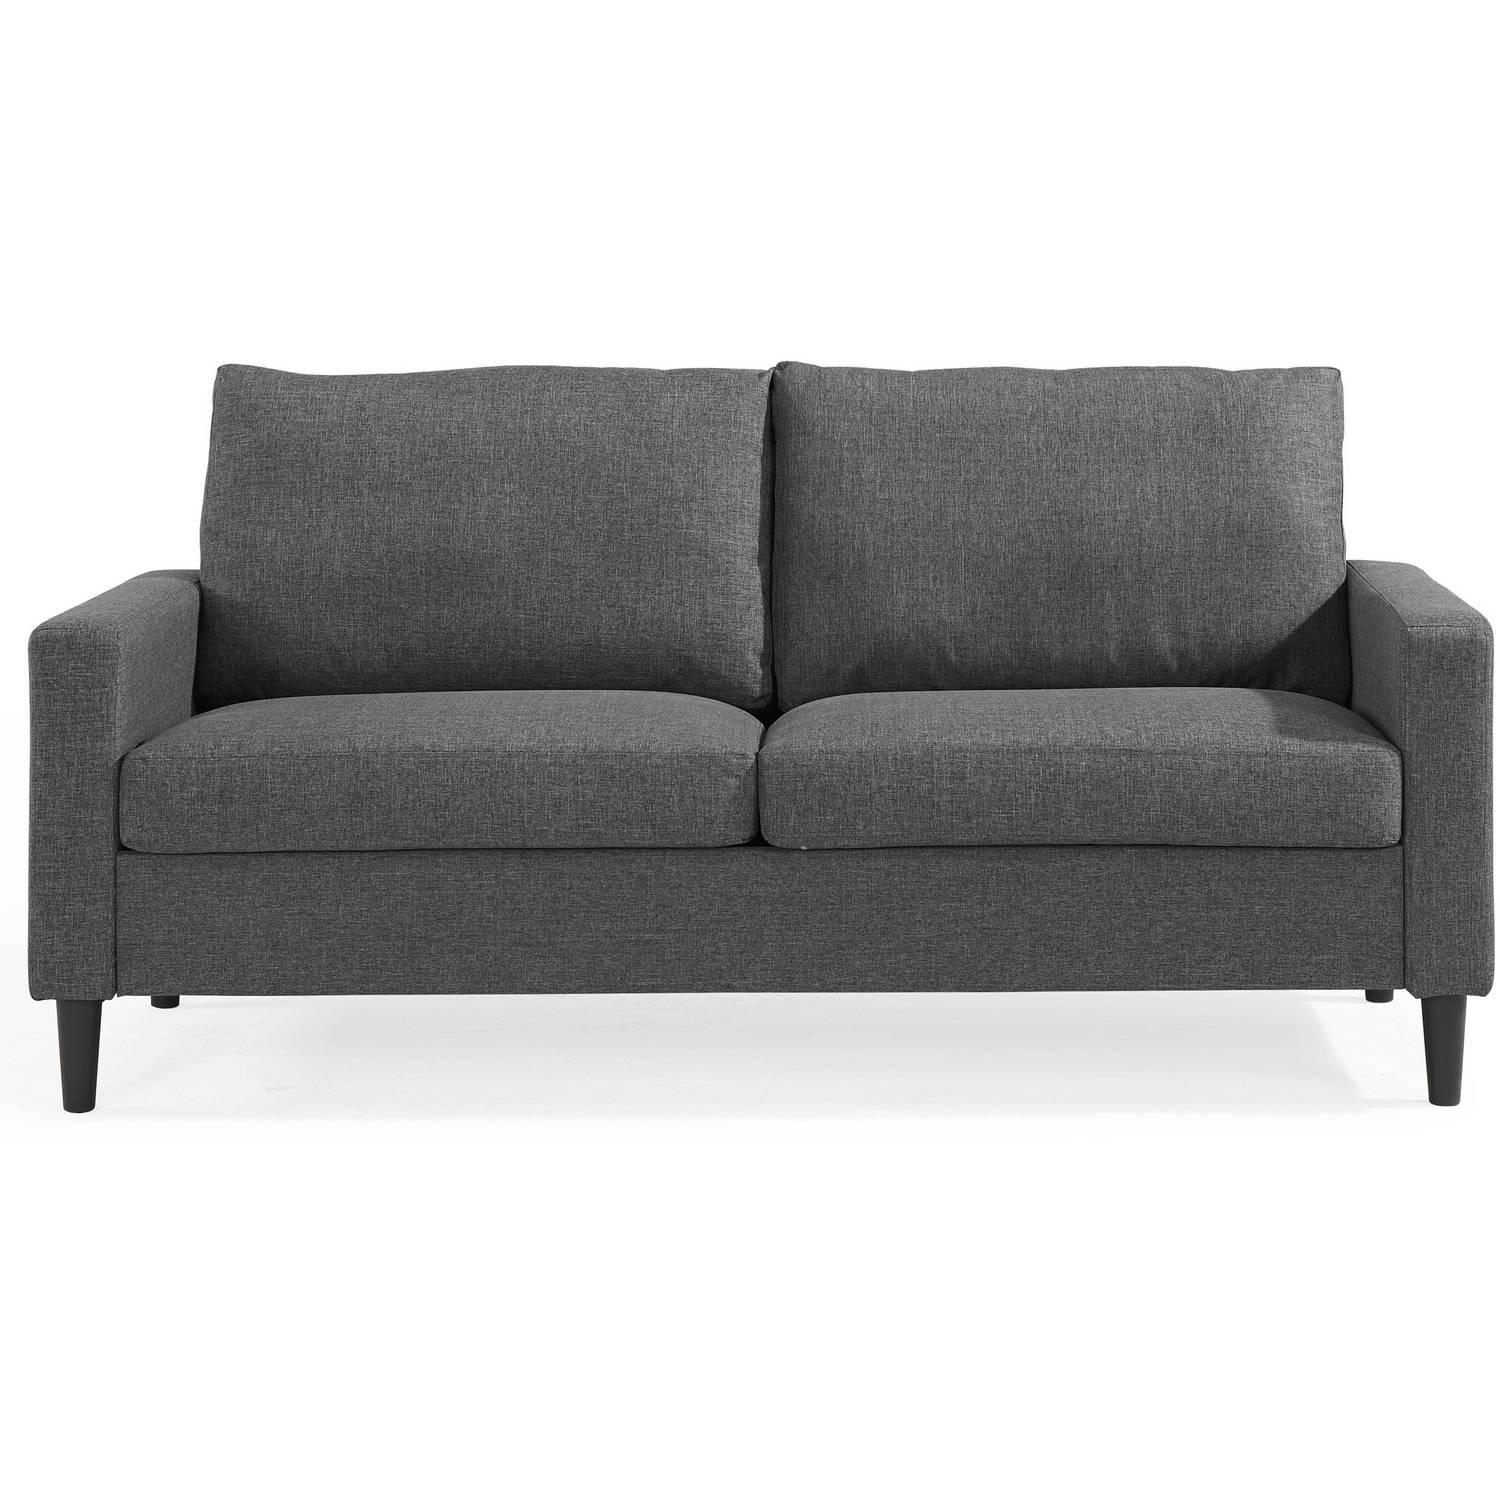 Mainstays Apartment Sofa, Multiple Colors – Walmart Throughout Mainstay Sofas (Image 8 of 20)